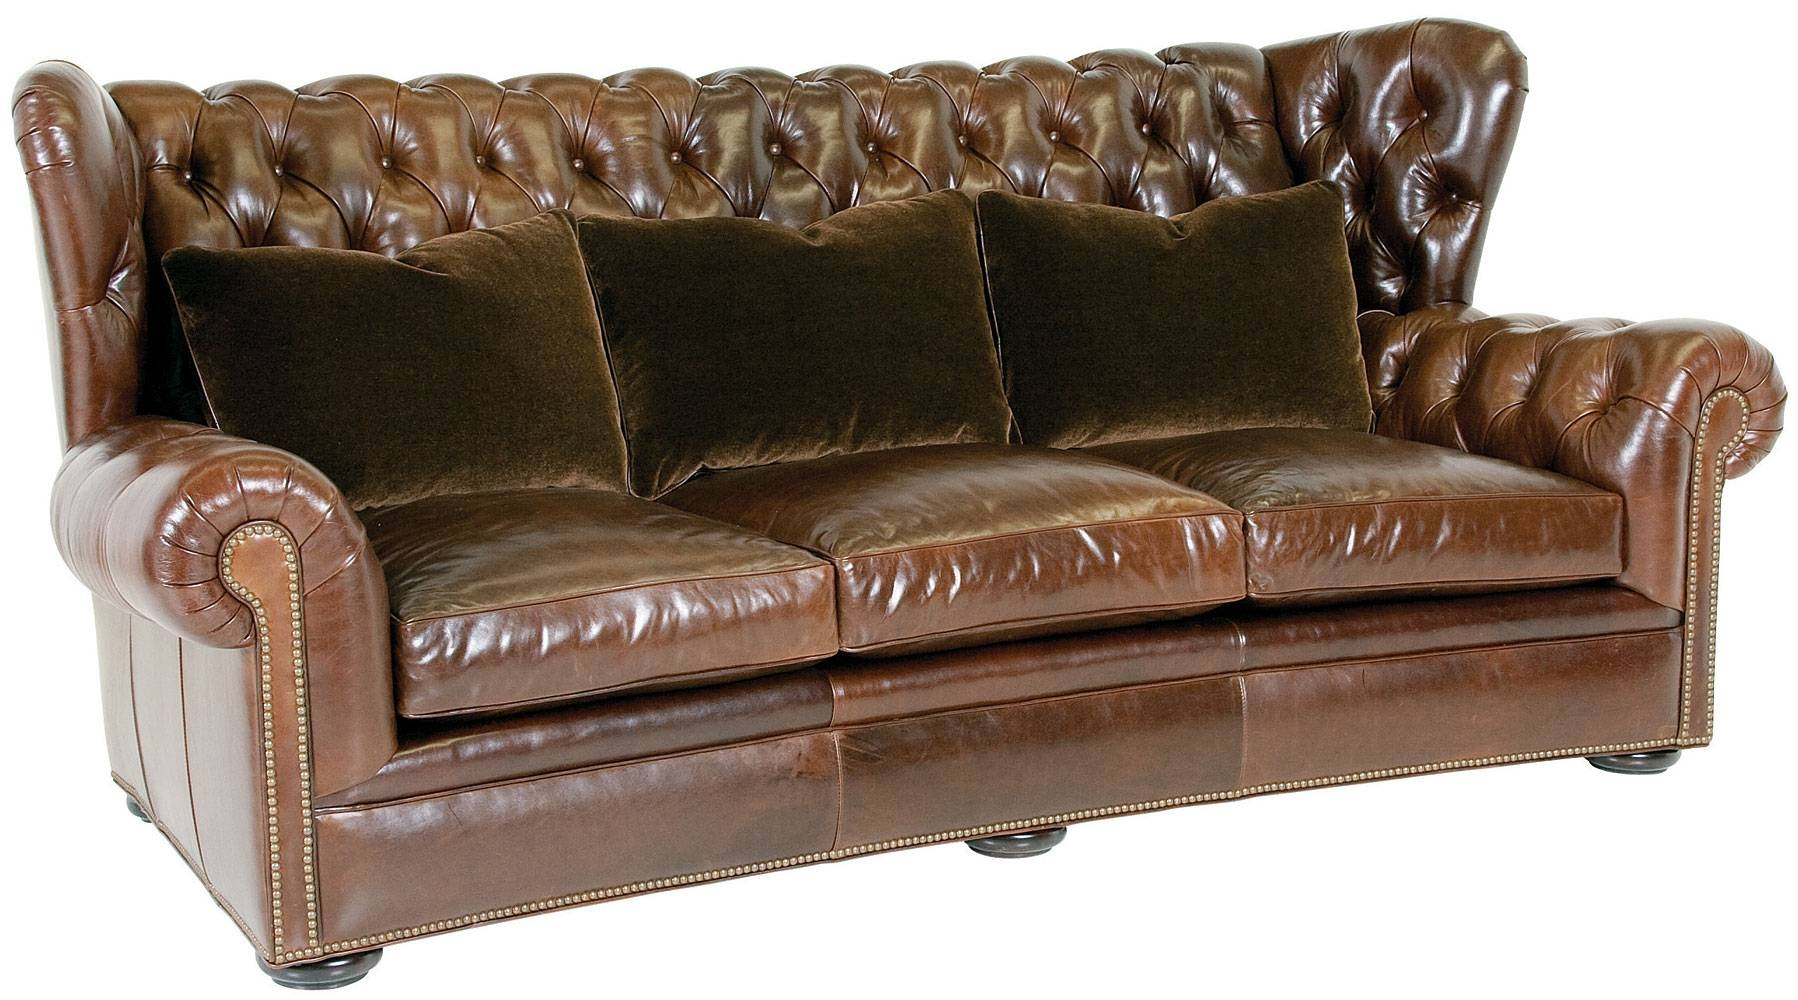 Storage Full Size Of Sofas Center 37 Staggering Chesterfield intended for Tufted Leather Chesterfield Sofas (Image 28 of 30)